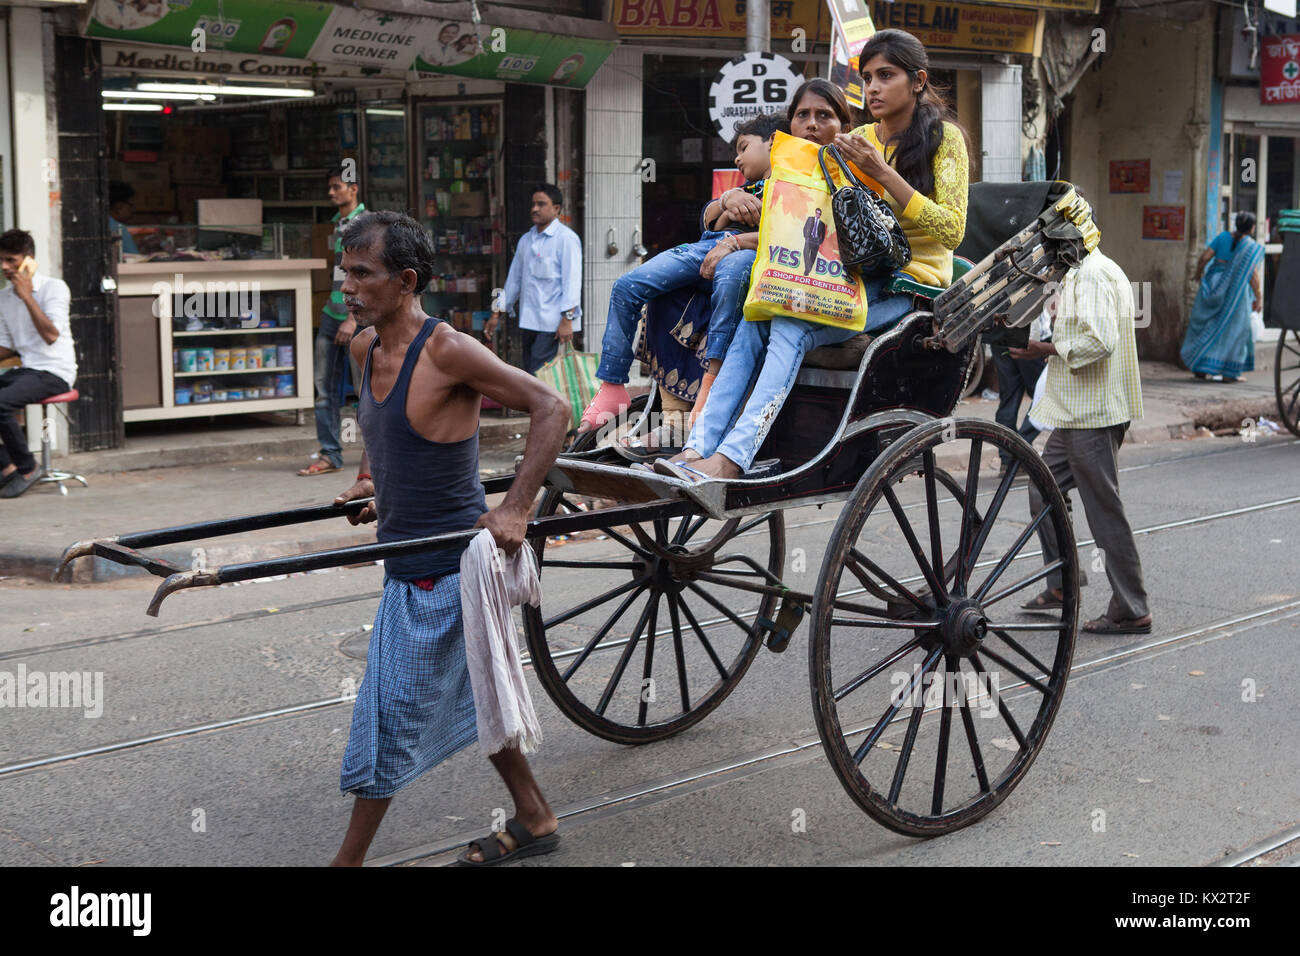 A rickshaw driver carries passengers through the streets of Kolkata, India - Stock Image